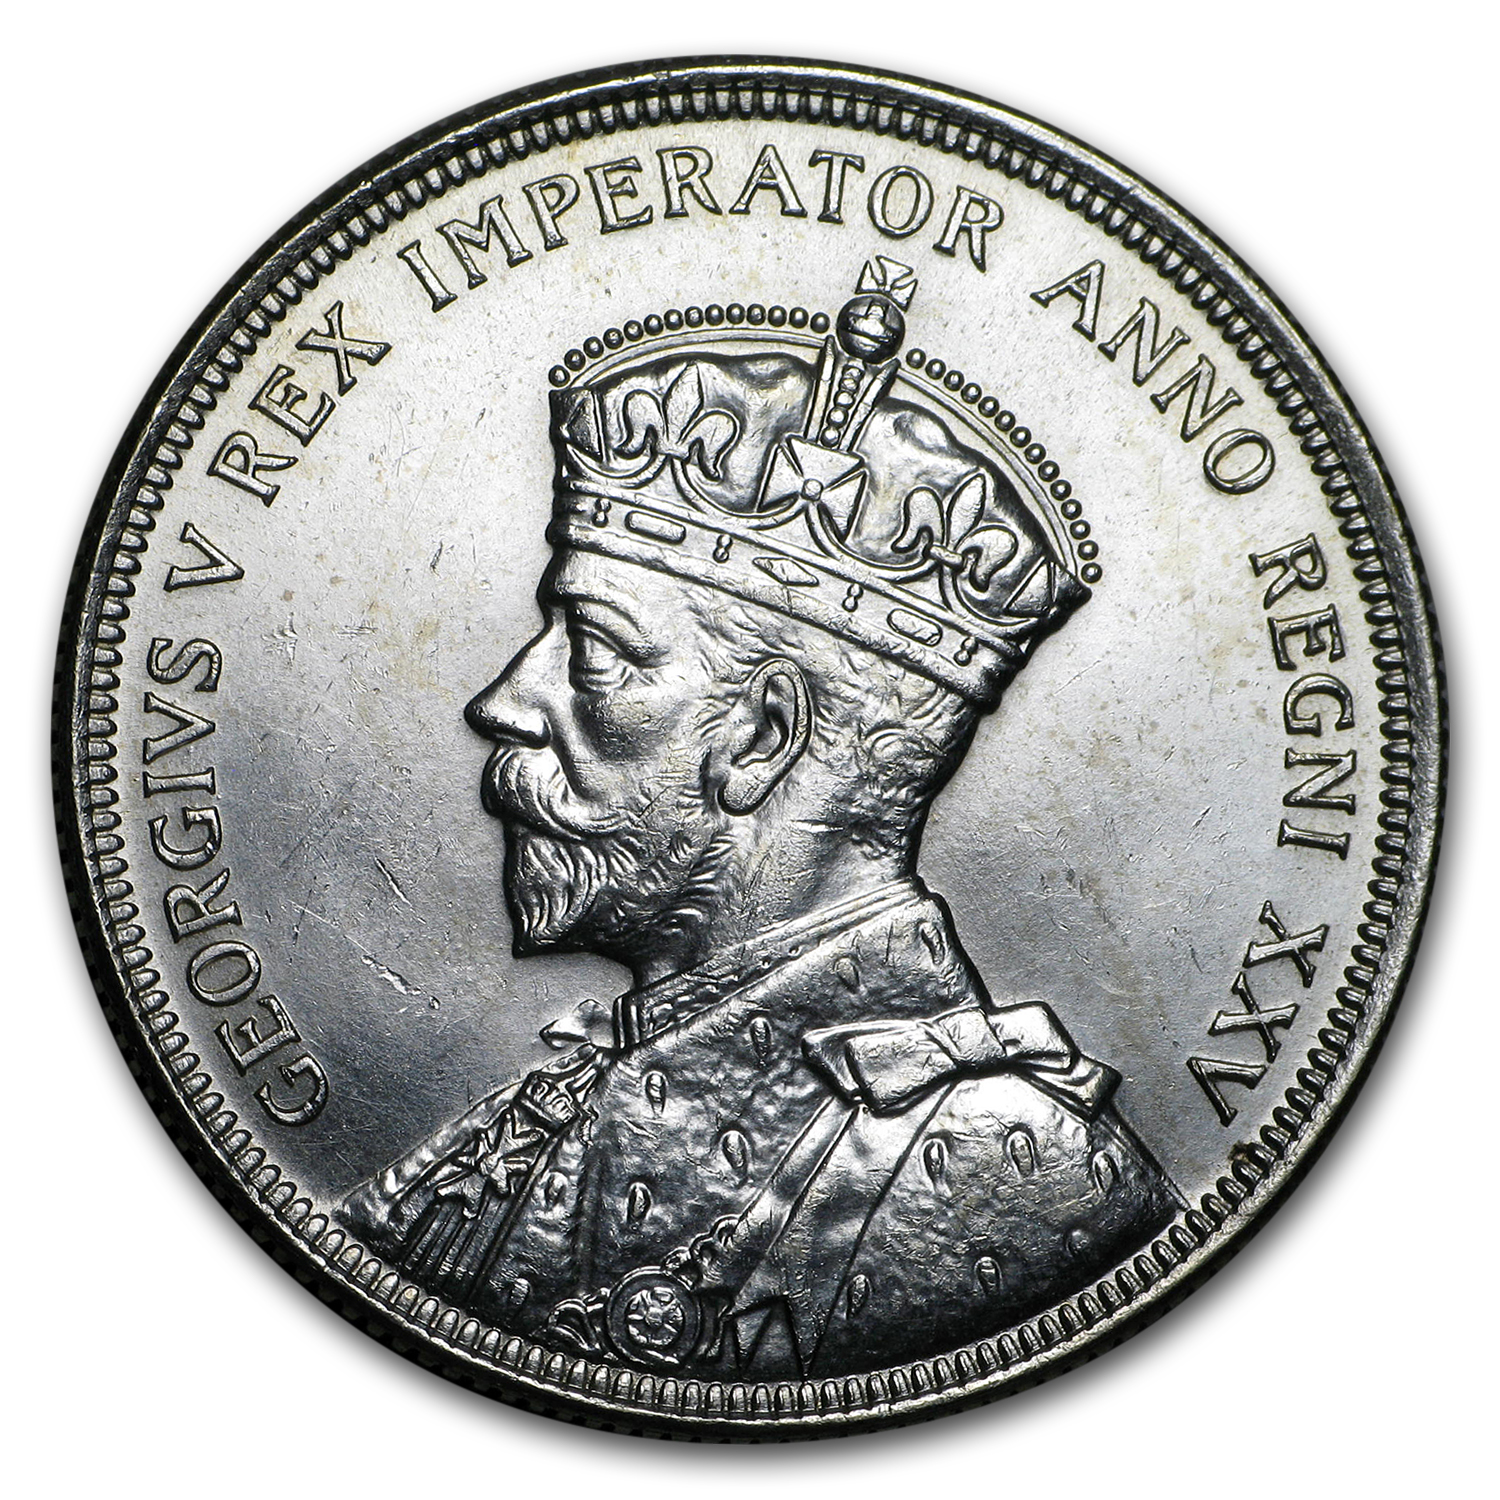 The Obverse of the 1935 Canadian Silver Dollar